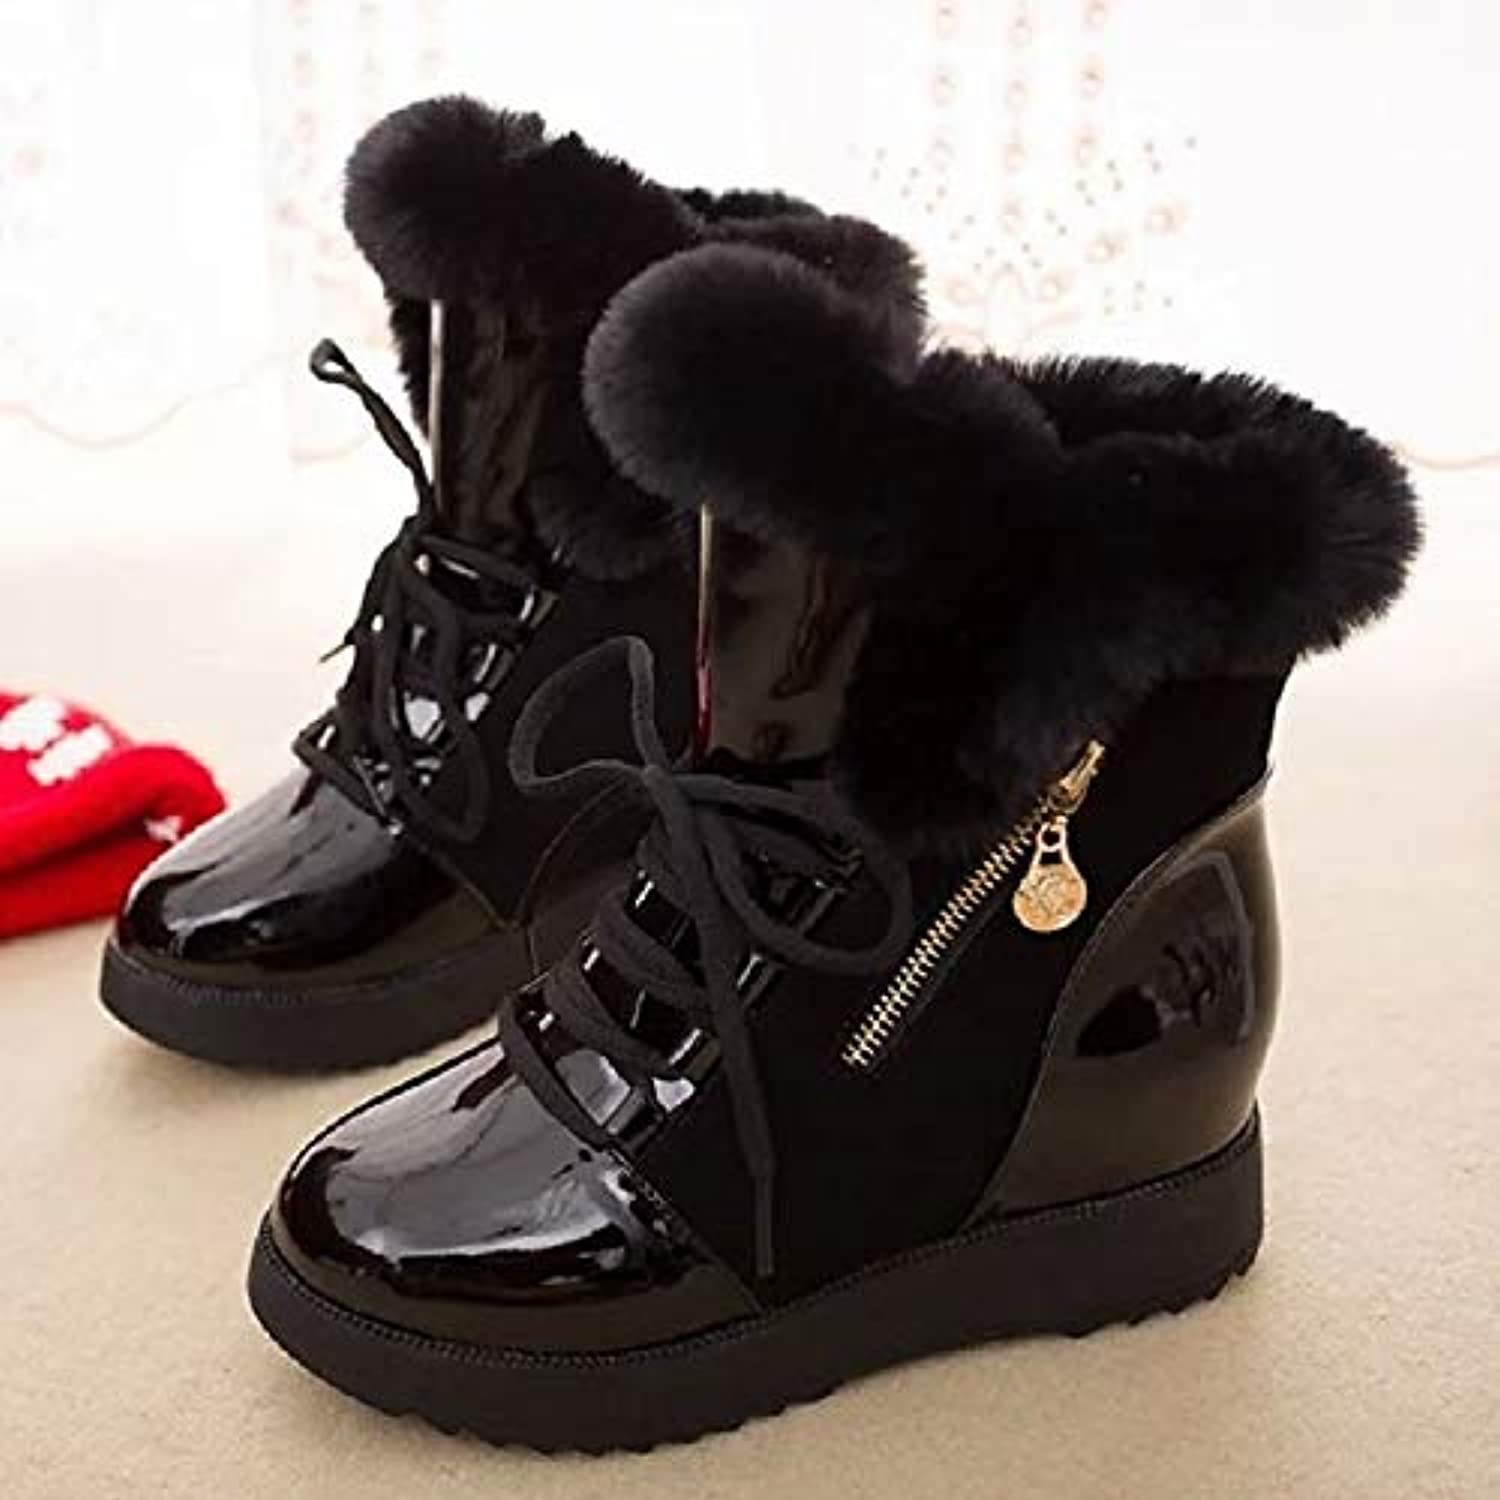 Women's Snow Boots PU(Polyurethane) Fall Casual Boots Wedge Heel Round Toe MidCalf Boots White Black